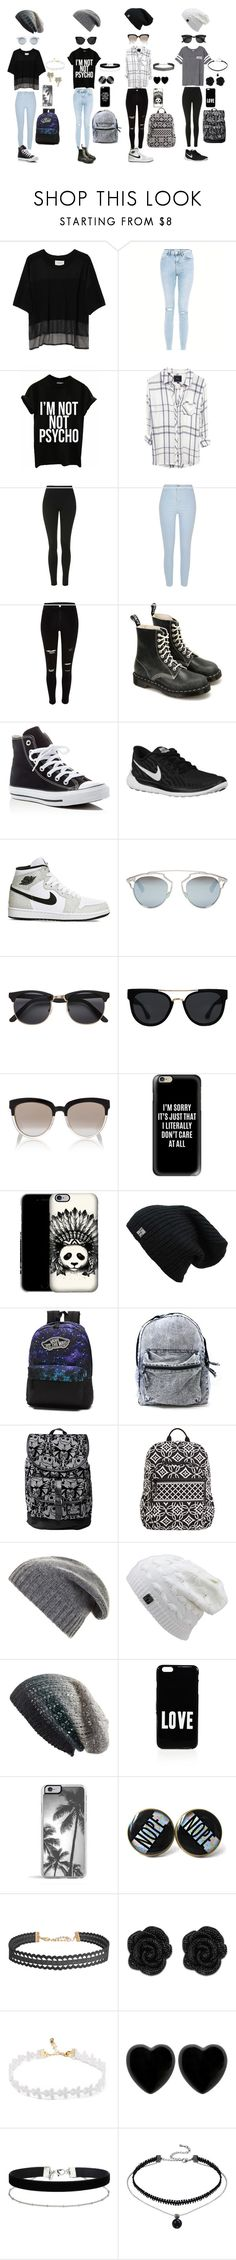 """Black, grey and white"" by draw4me ❤ liked on Polyvore featuring Public School, New Look, Victoria's Secret, Topshop, River Island, Dr. Martens, Converse, NIKE, Christian Dior and Quay"